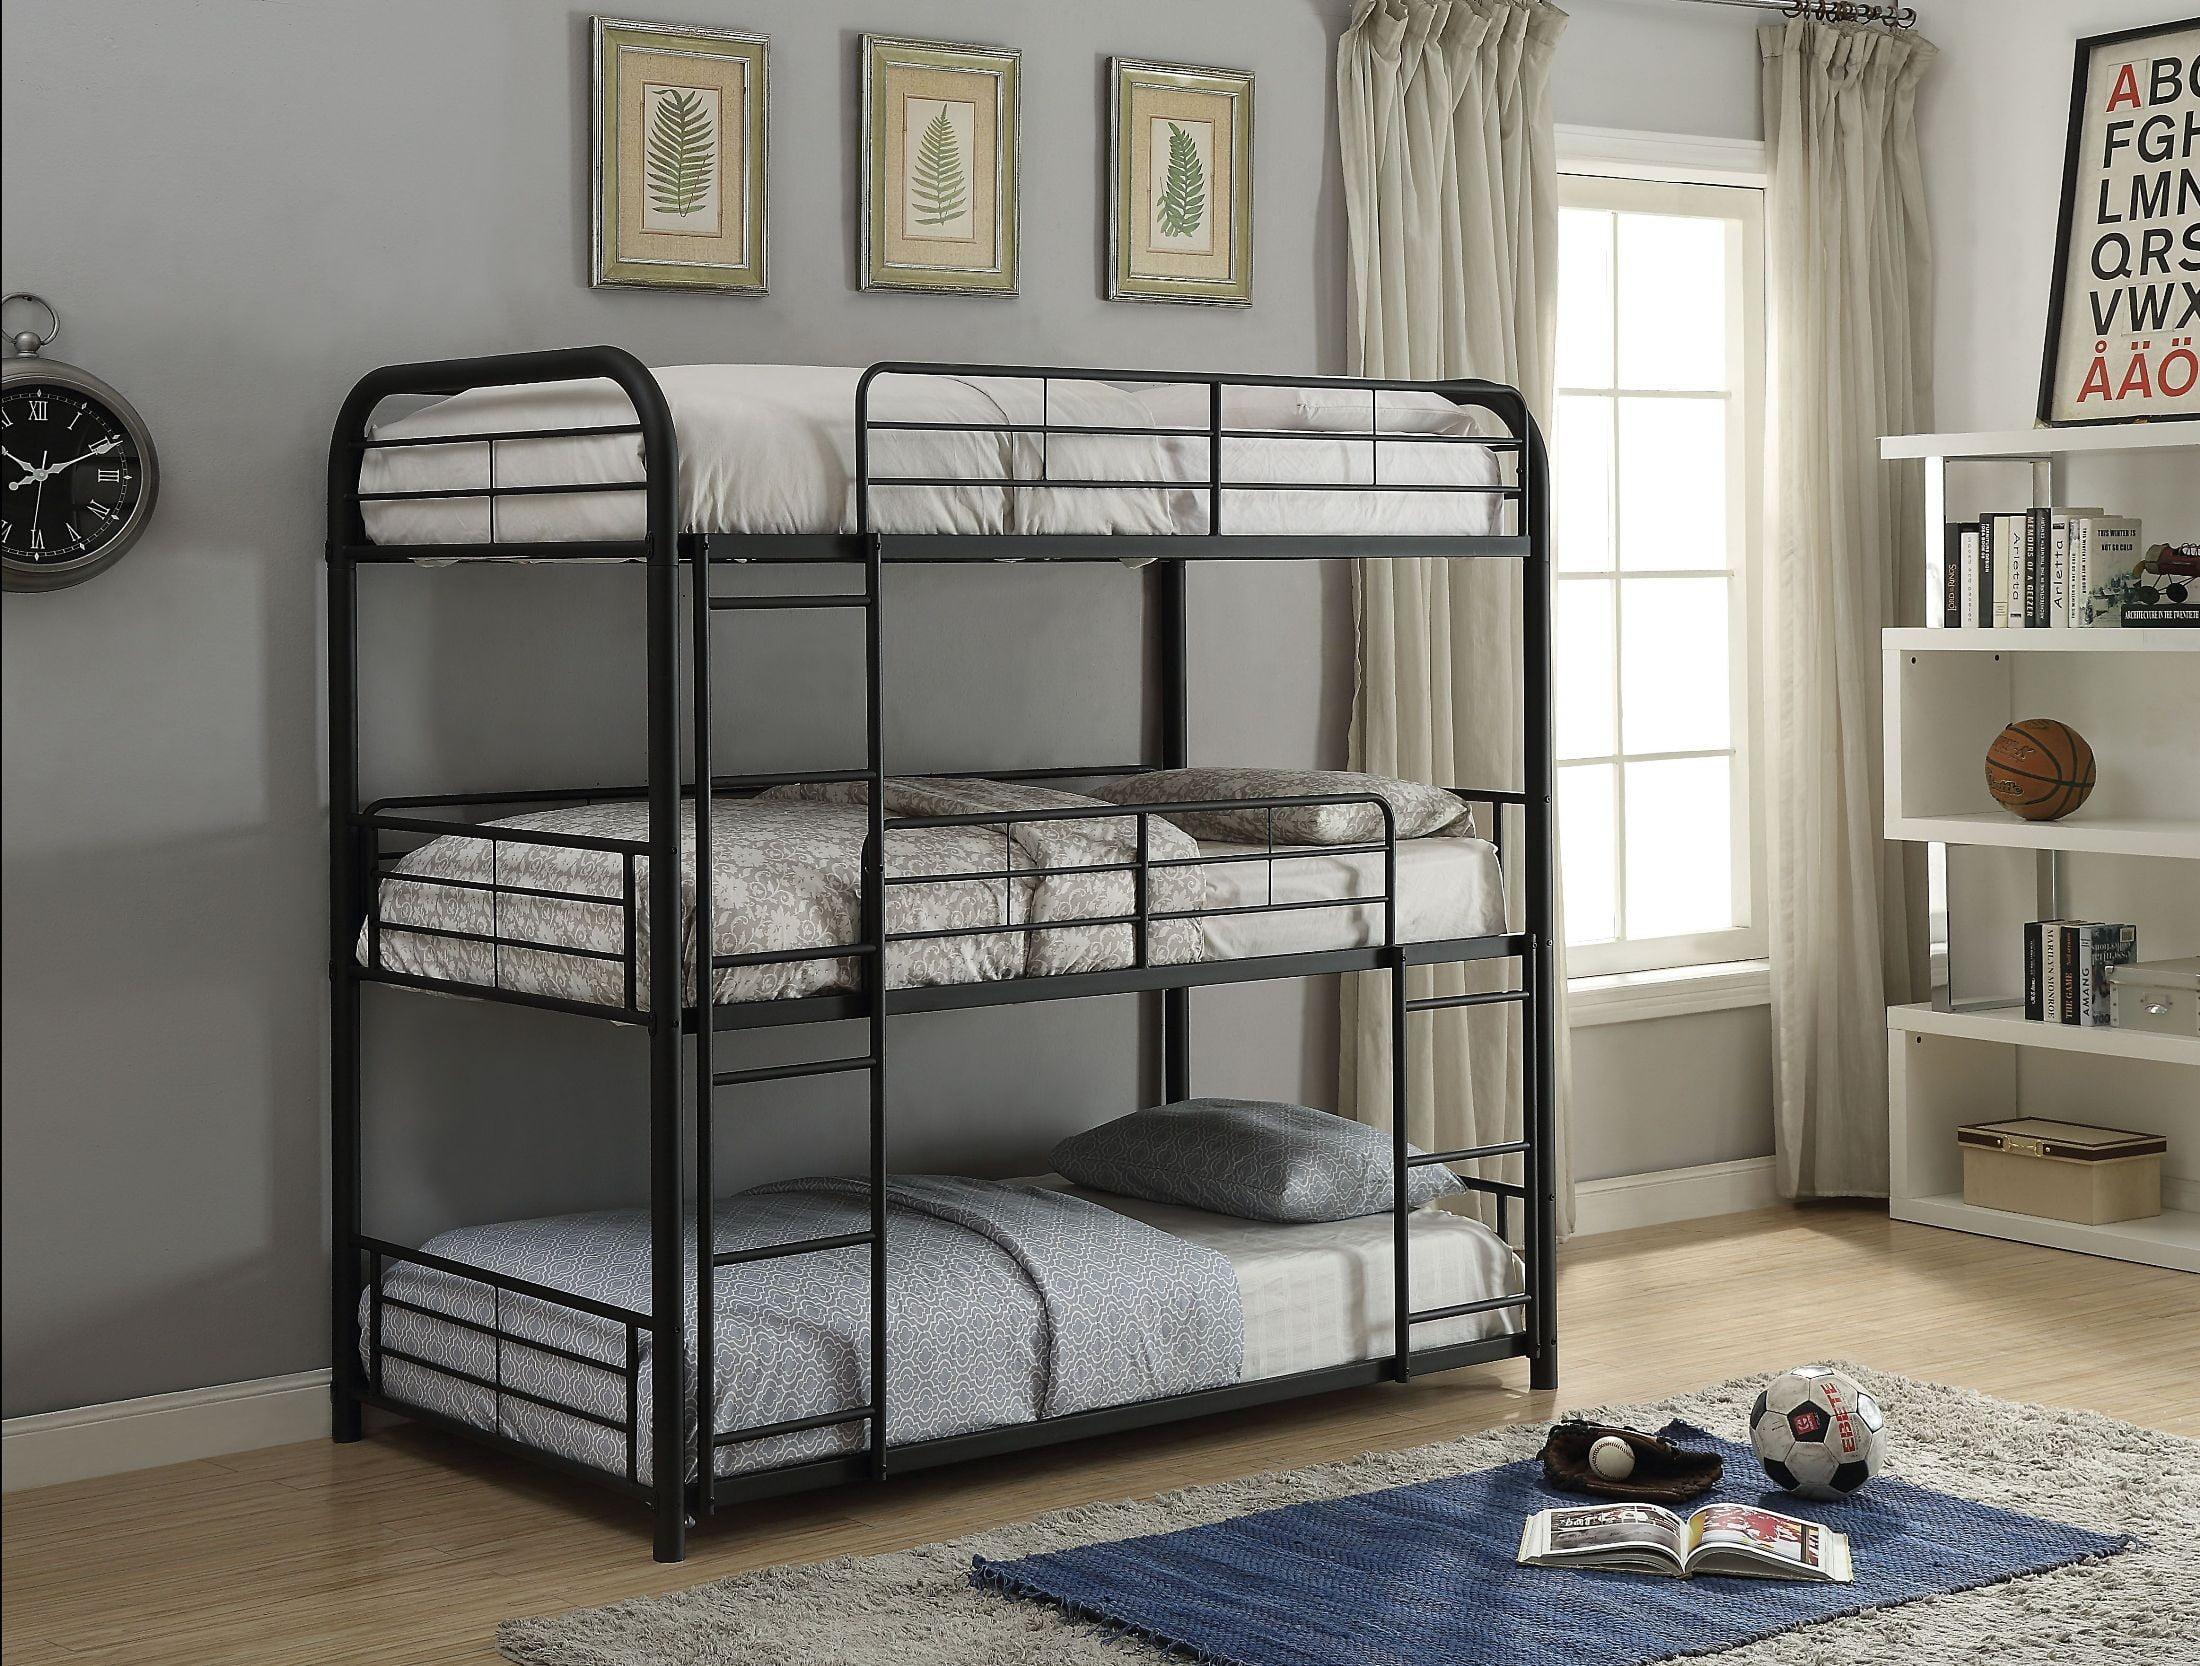 Cairo Sandy Black Twin Triple Bunk Bed From Acme Coleman